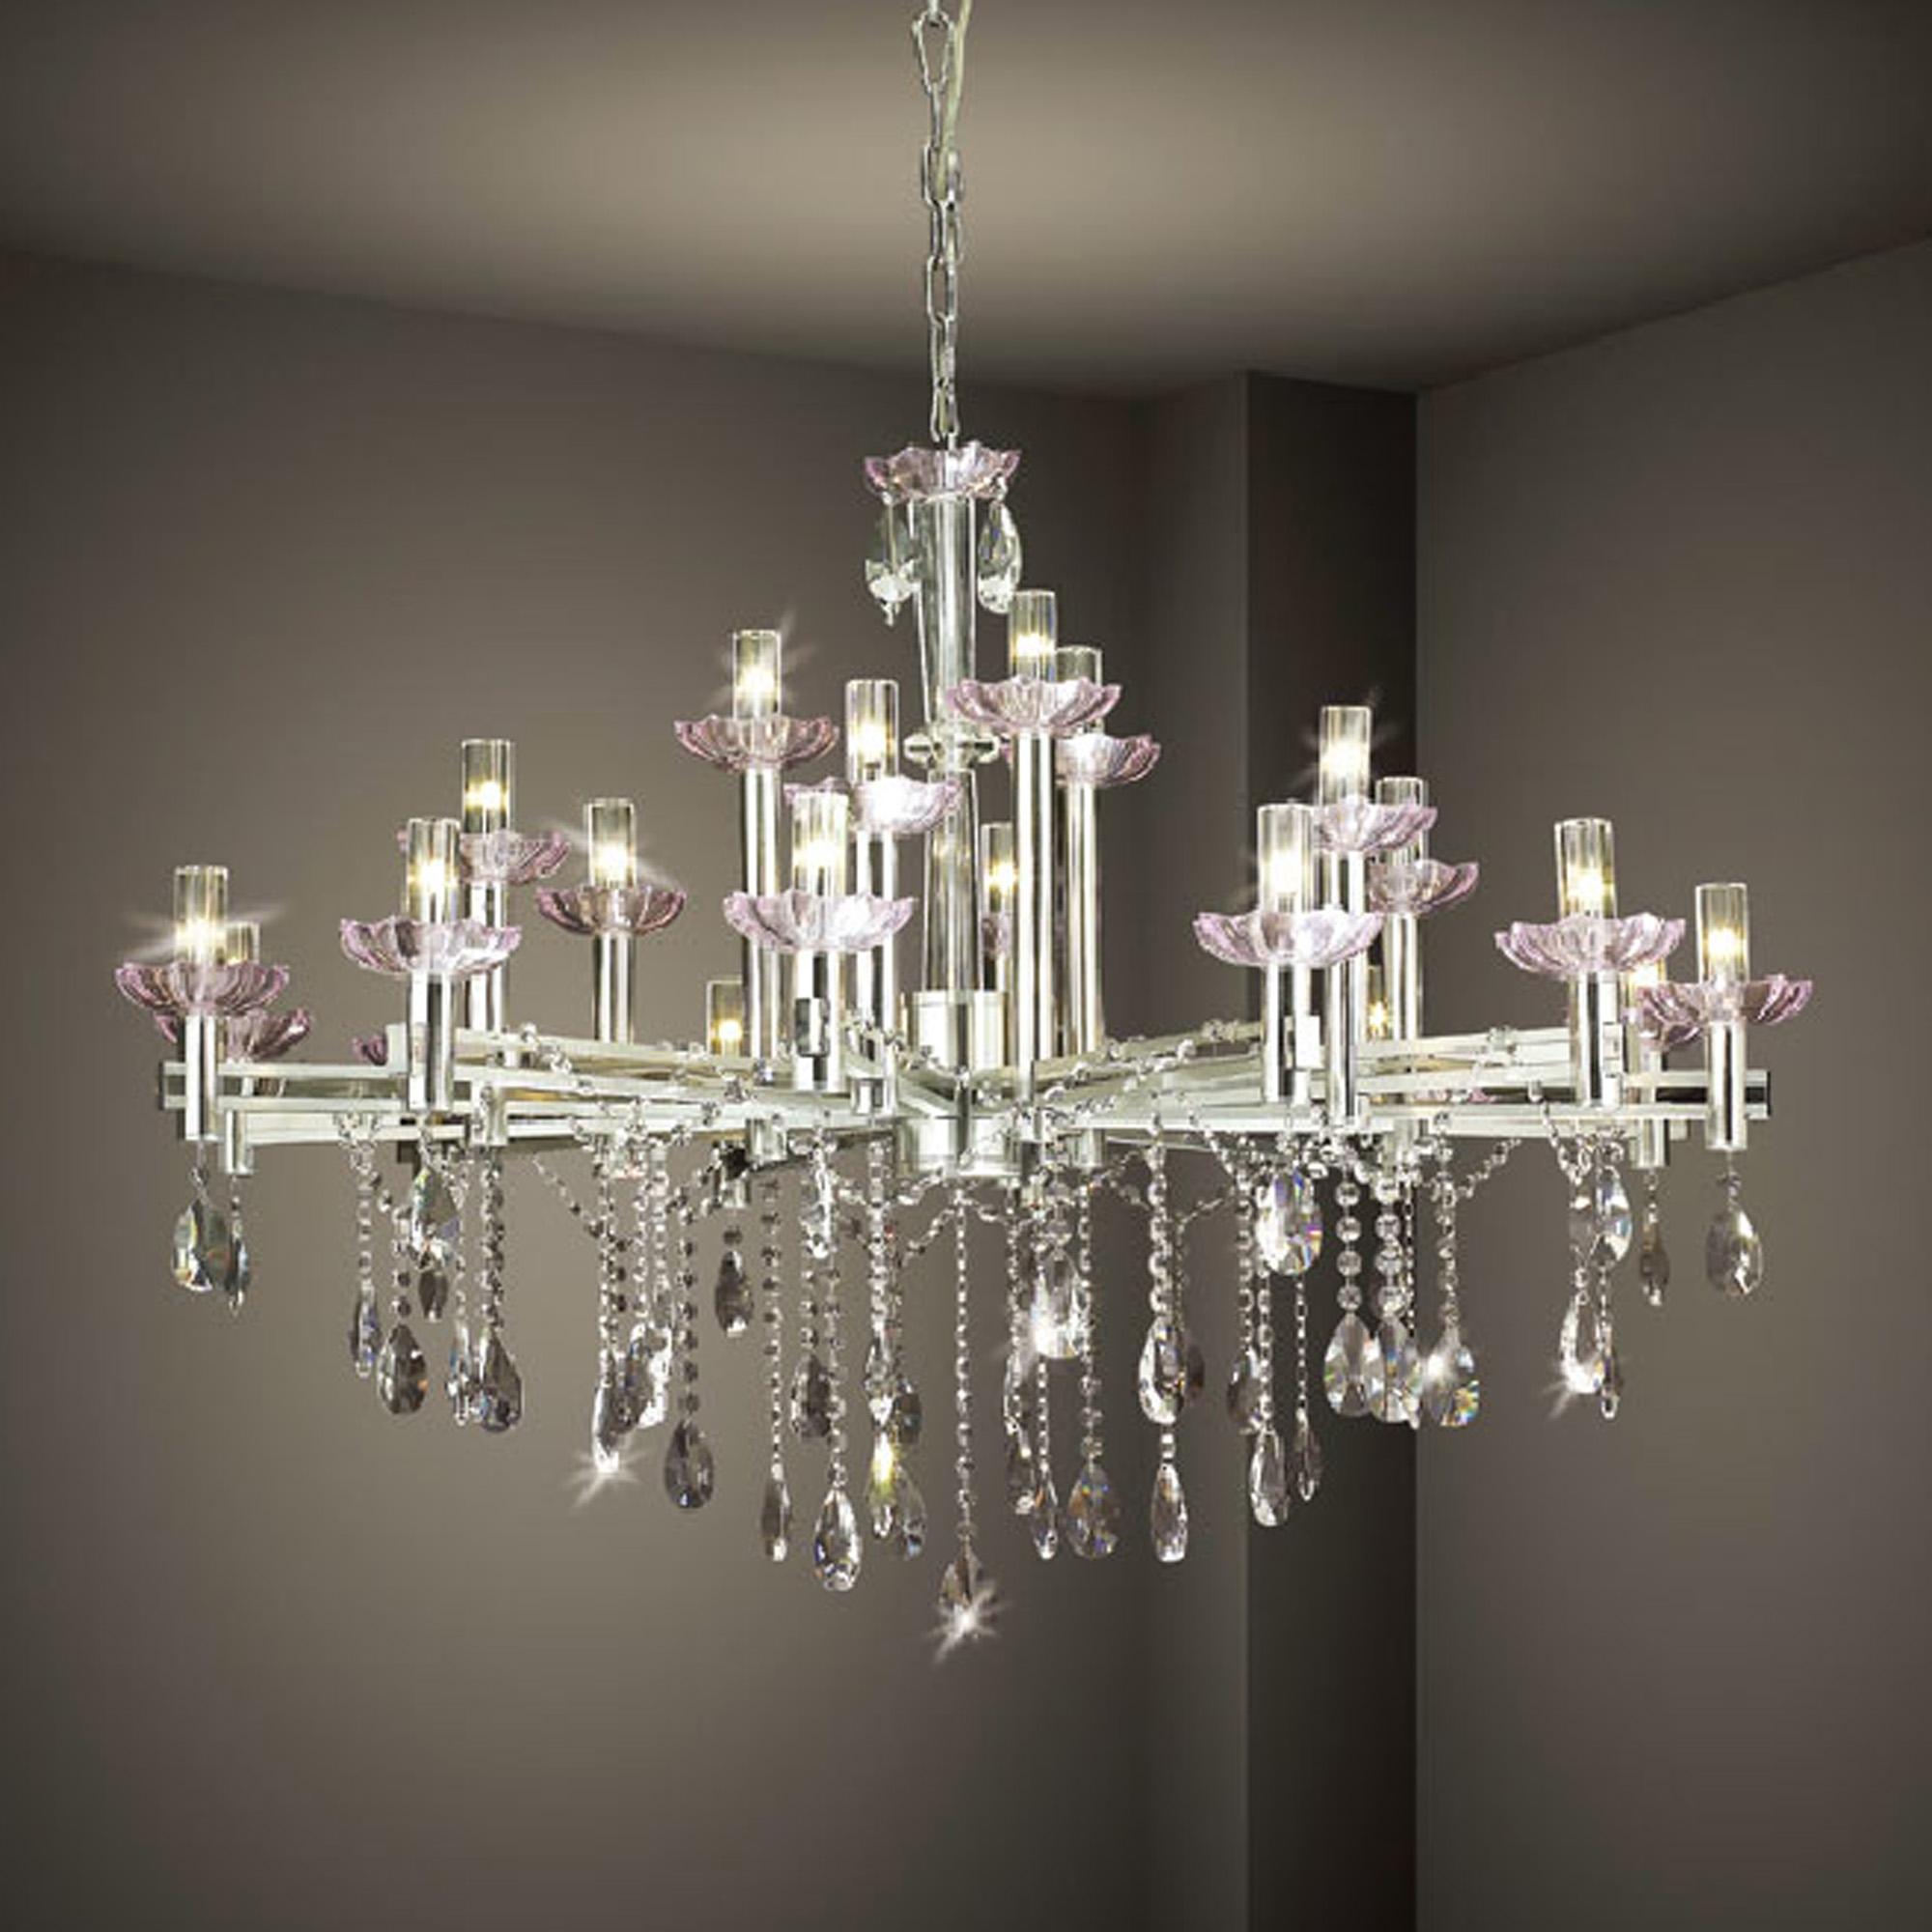 Chandelier Inspiring White Modern Chandelier Large Contemporary In Large Modern Chandeliers (Image 3 of 15)